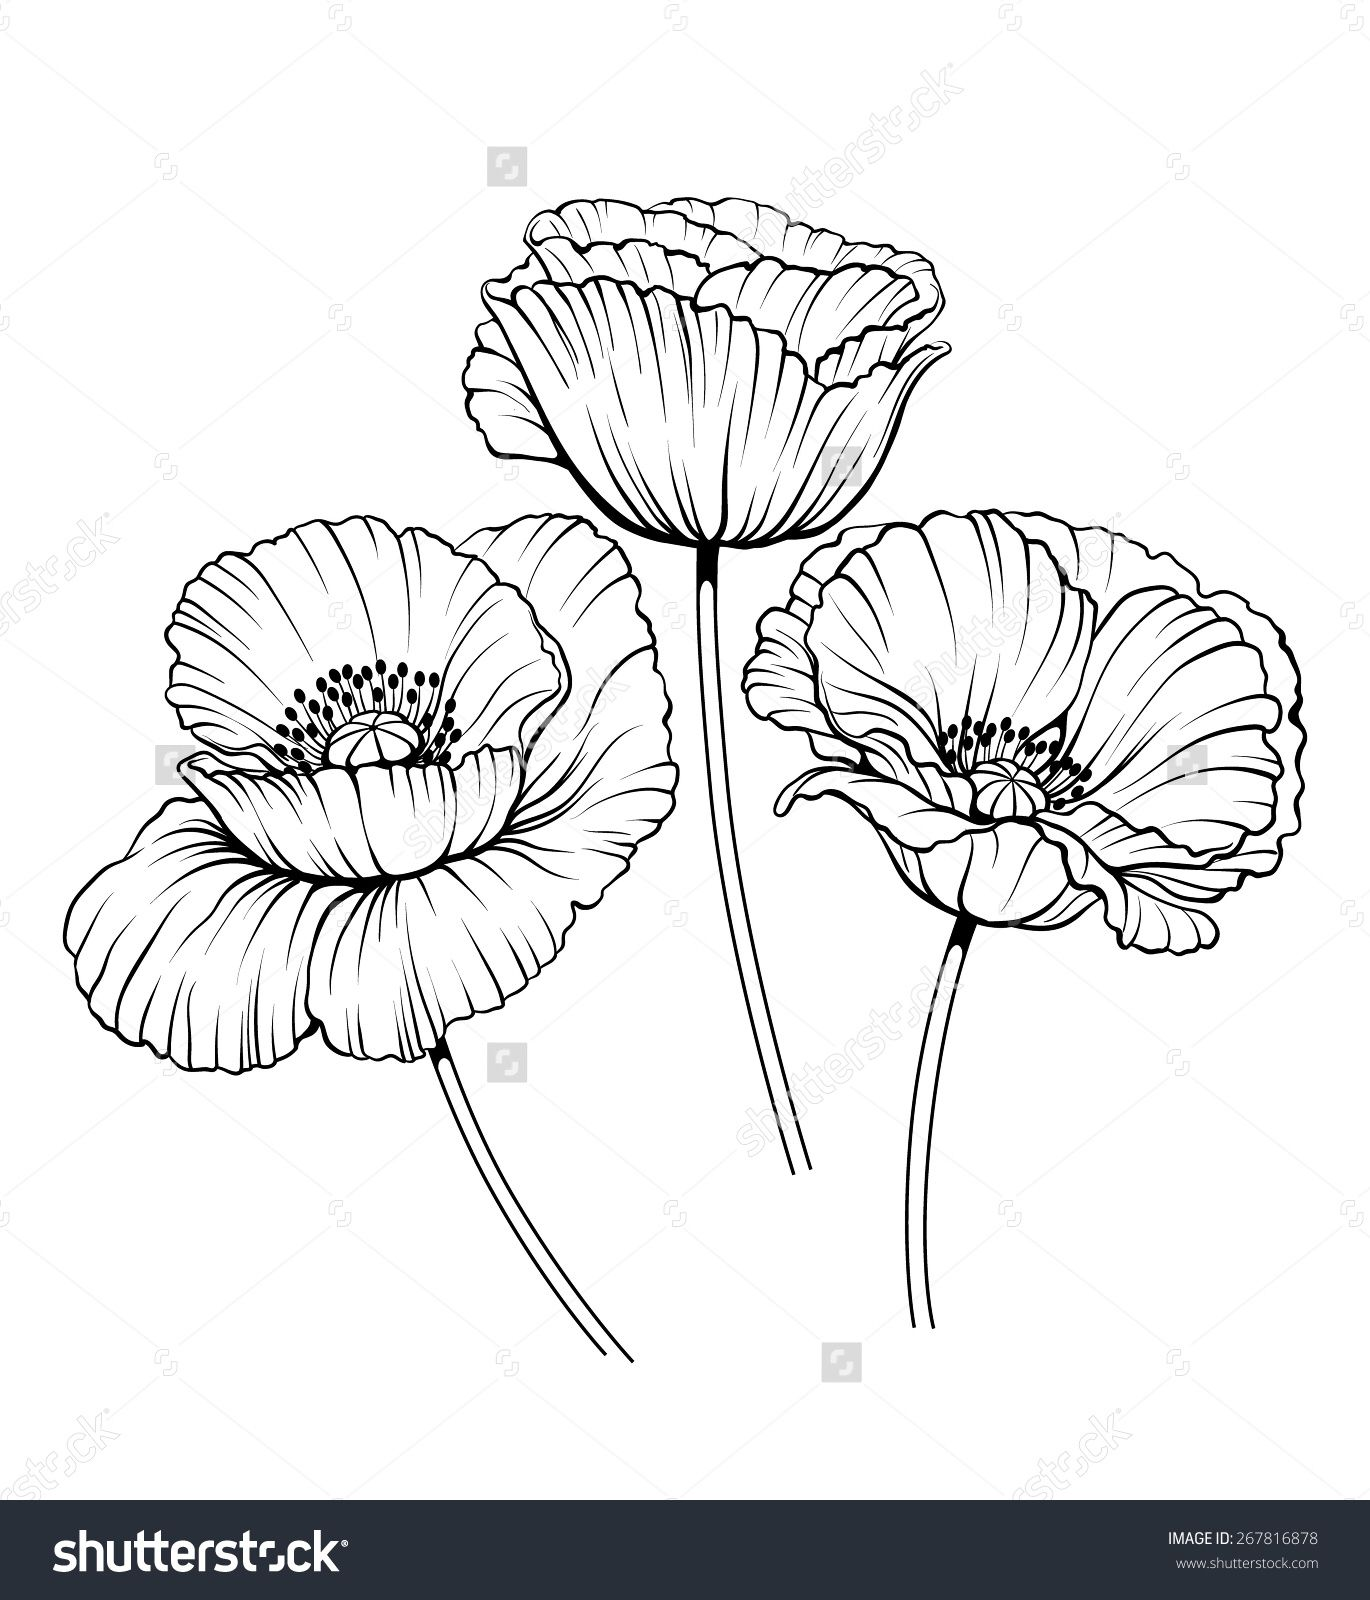 Pin by shelby navone on athena tattoo reference for shelby line poppies set 01 royalty free stock images mightylinksfo